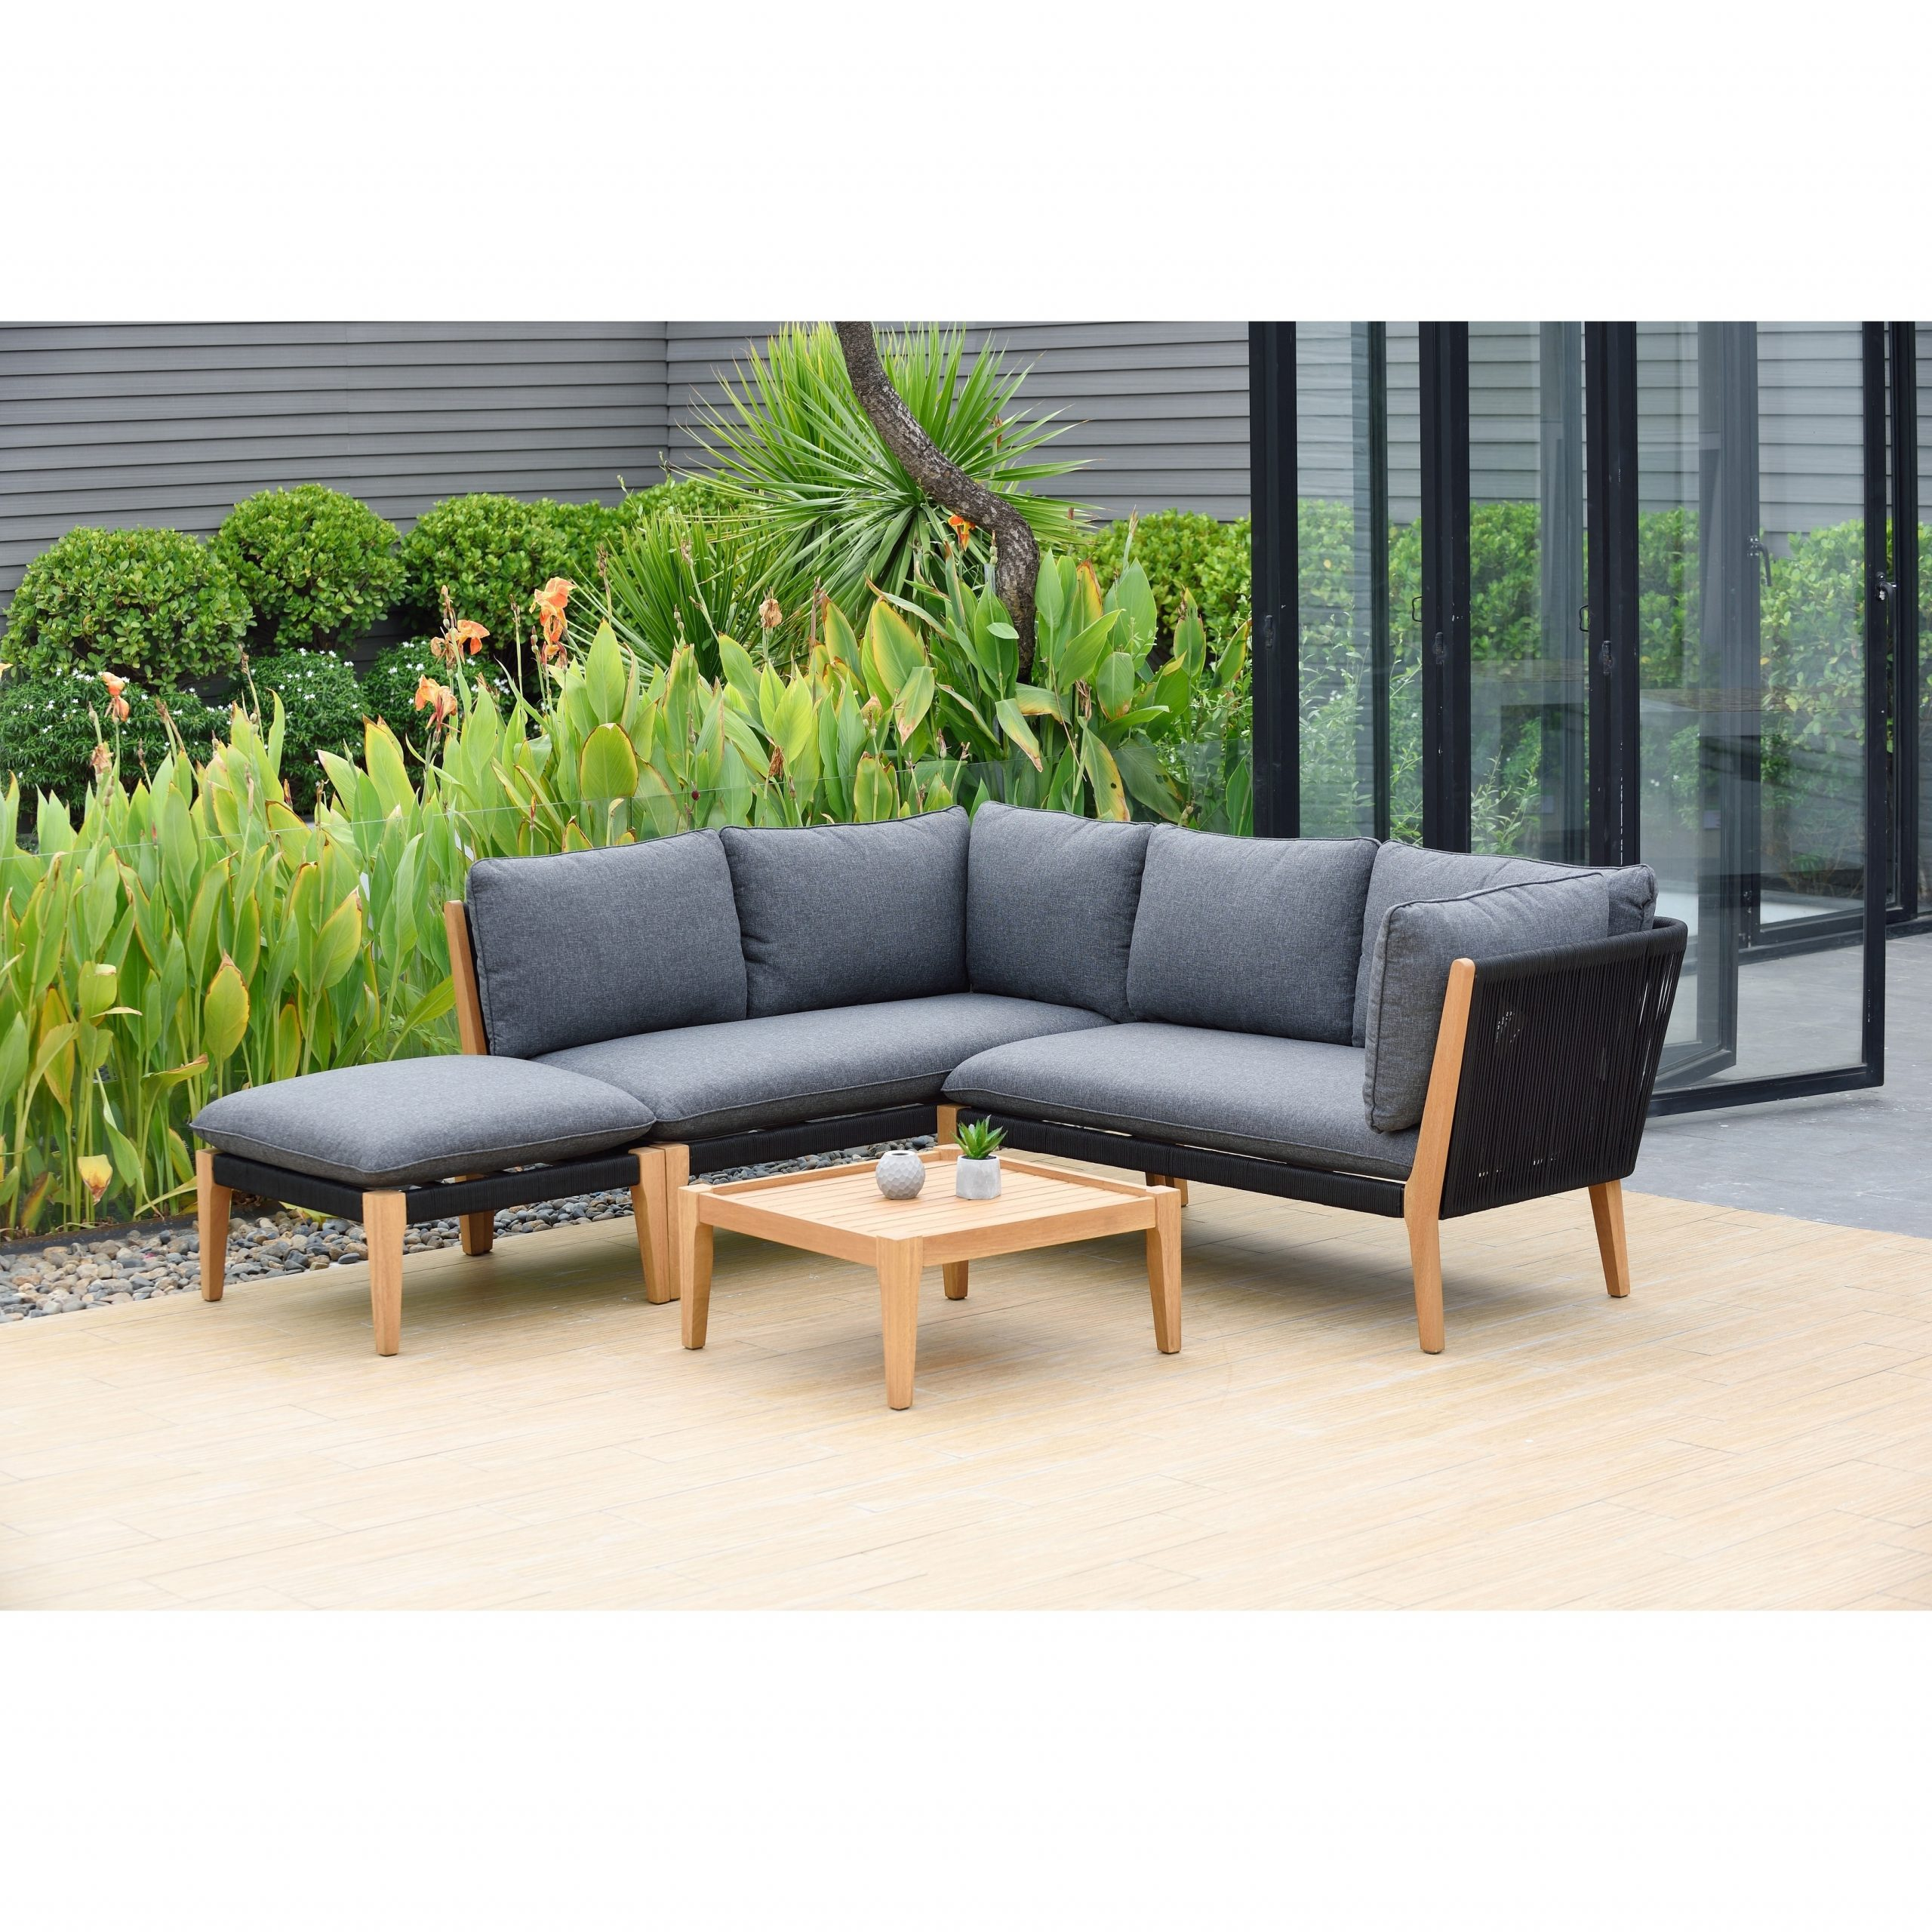 Lazio 4 Piece Patio Outdoor Sectional Set With Certified Regarding Current Olinda 4 Piece Teak Sectionals Seating Group With Cushions (View 10 of 25)